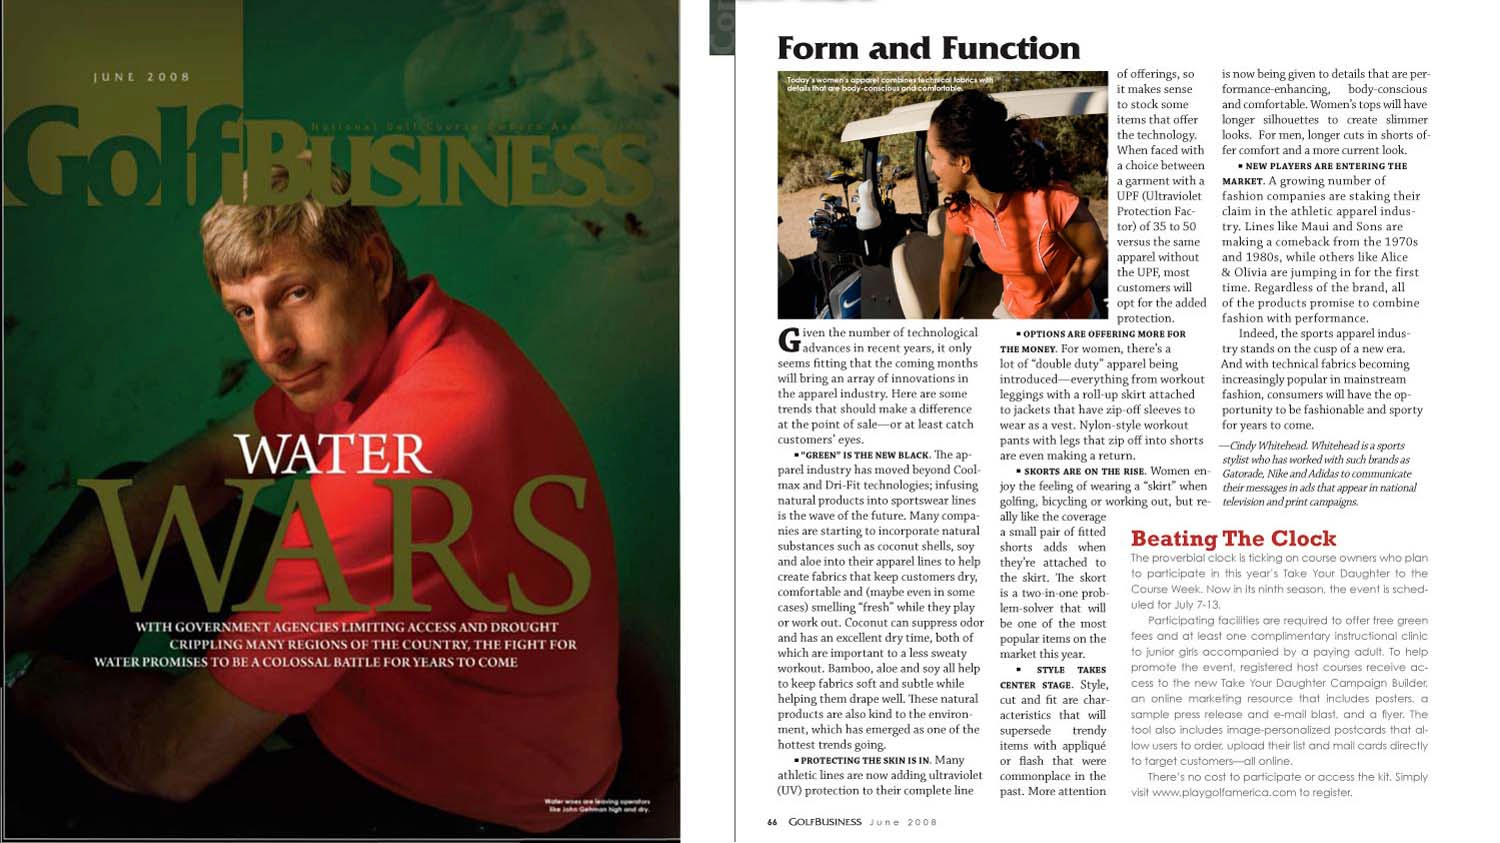 Women's Golf Wear / Golf Business Magazine